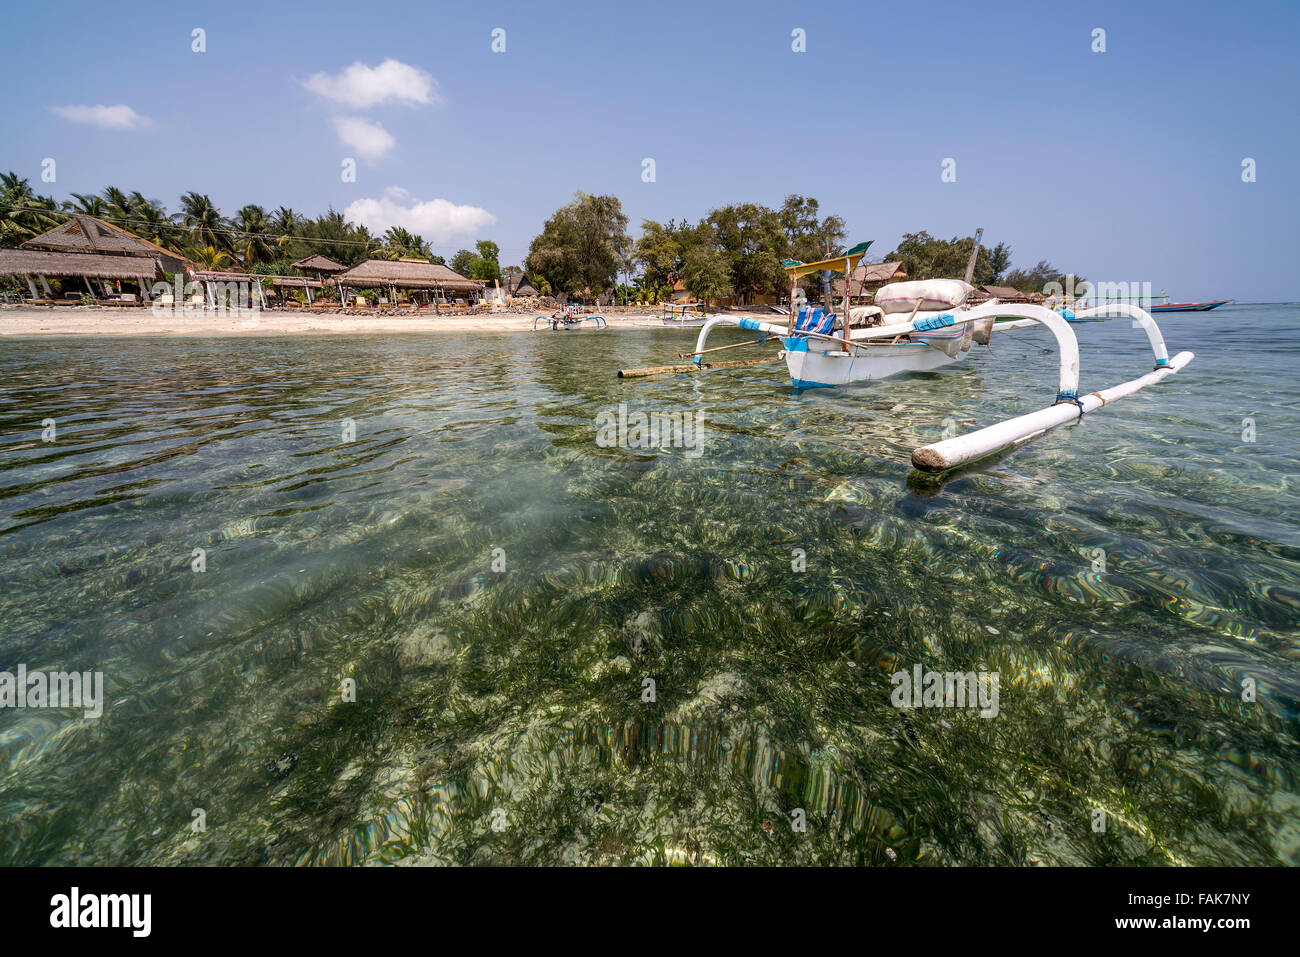 outrigger canoe at the beach on the small island Gili Air, Lombok, Indonesia, Asia - Stock Image